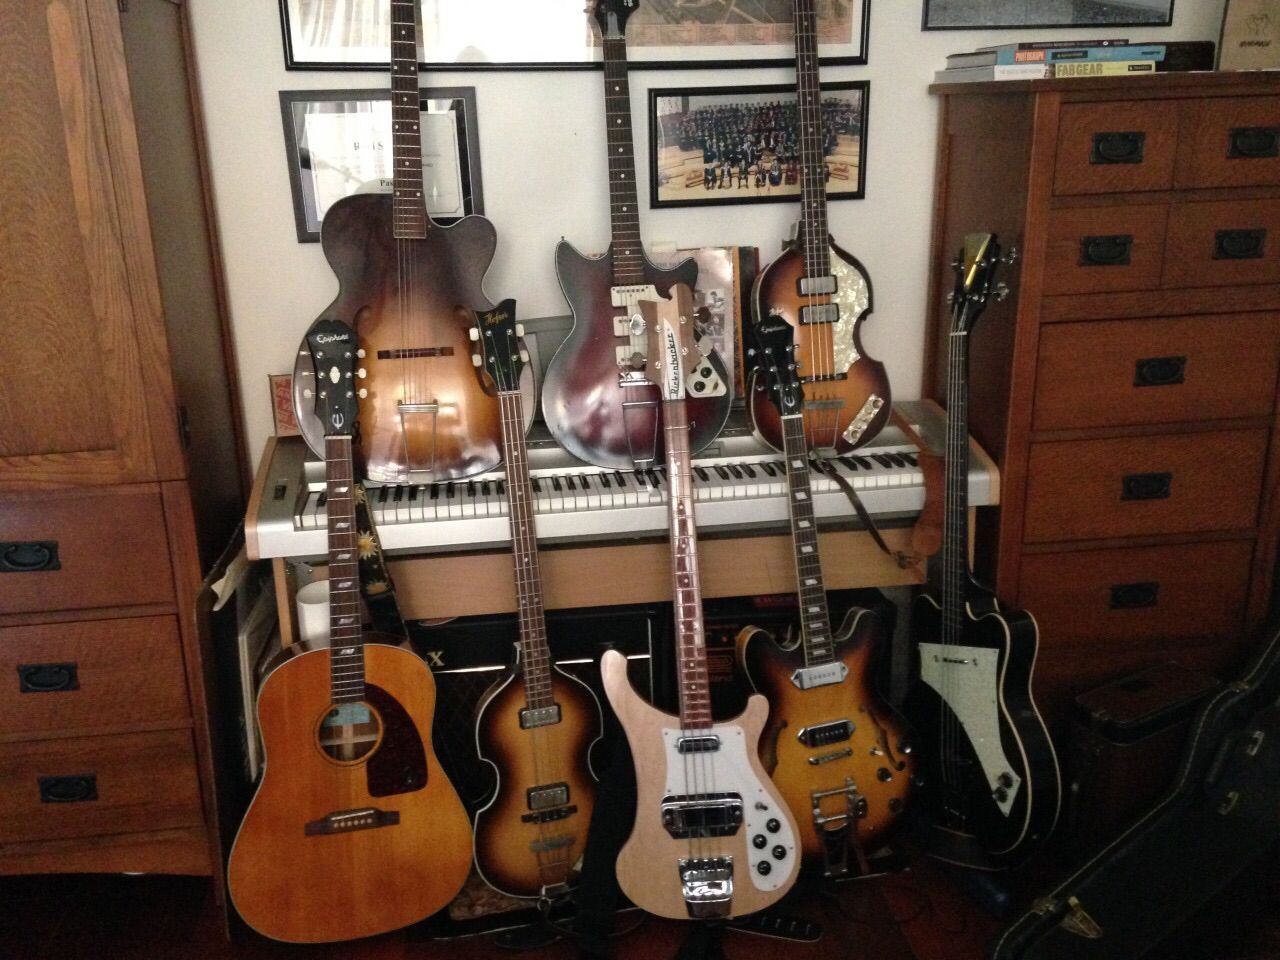 Paul Mccartney Guitar Collection Top Zenith Arch 1950s Egmond Epi Vs Gibson Selector Switch Mylespaulcom Rosetti Solid 7 Hofner Cavern Bottom Epiphone Texan 1963